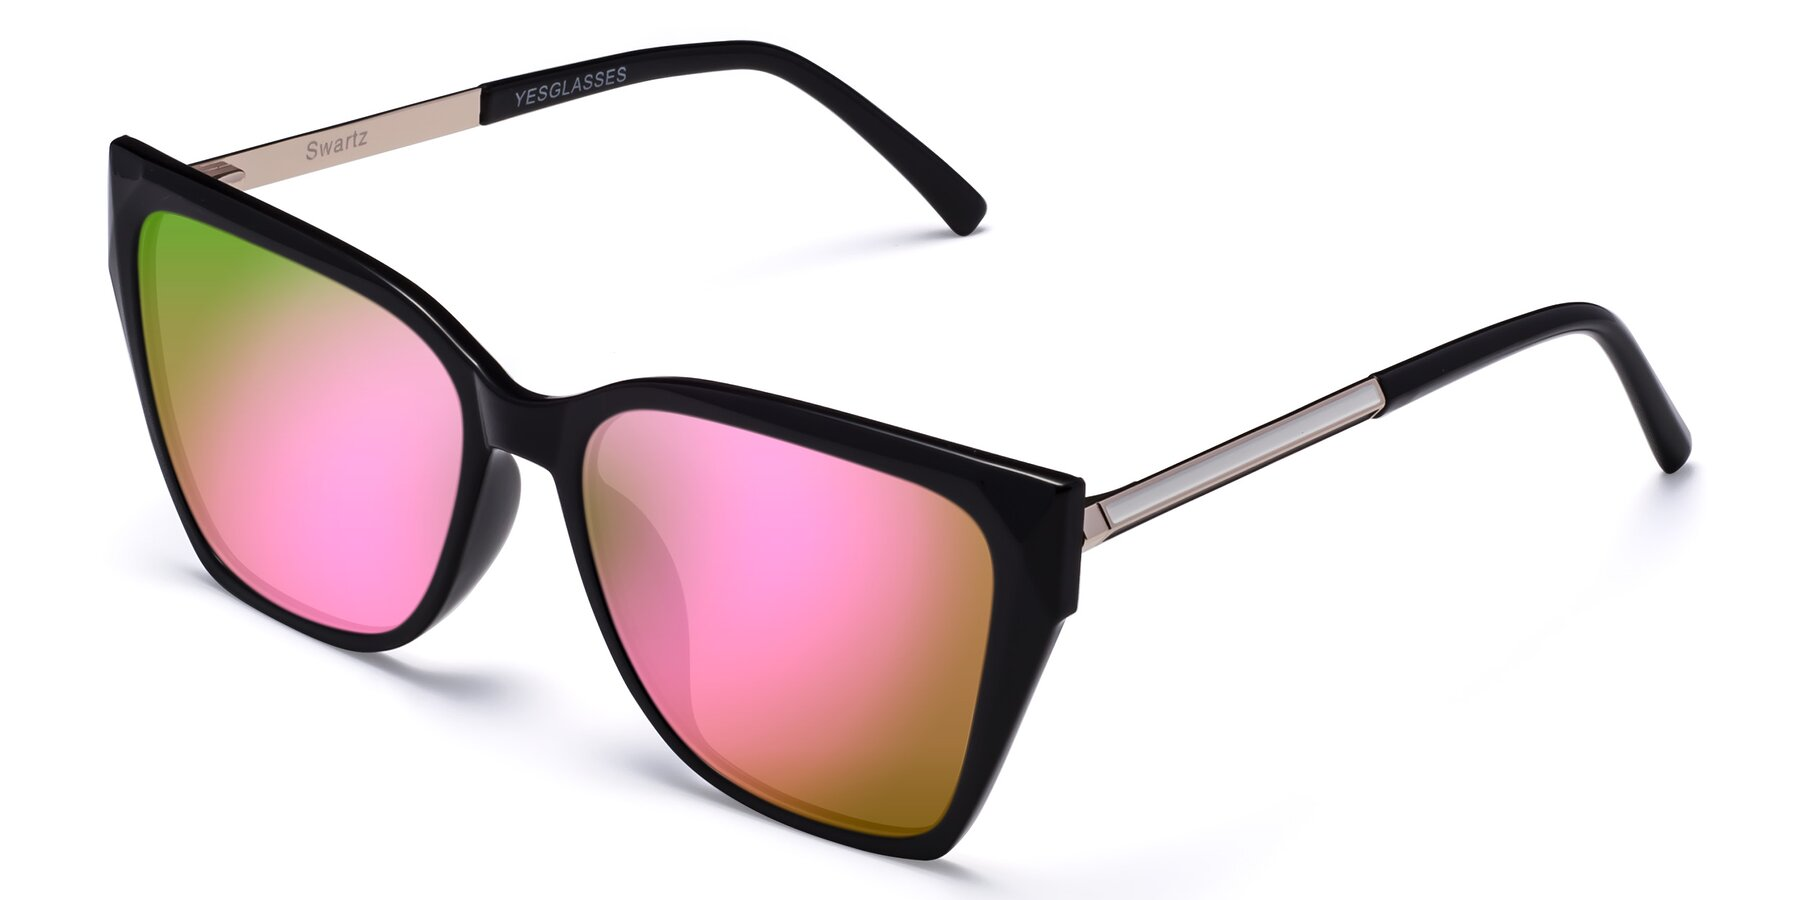 Angle of Swartz in Black with Pink Mirrored Lenses